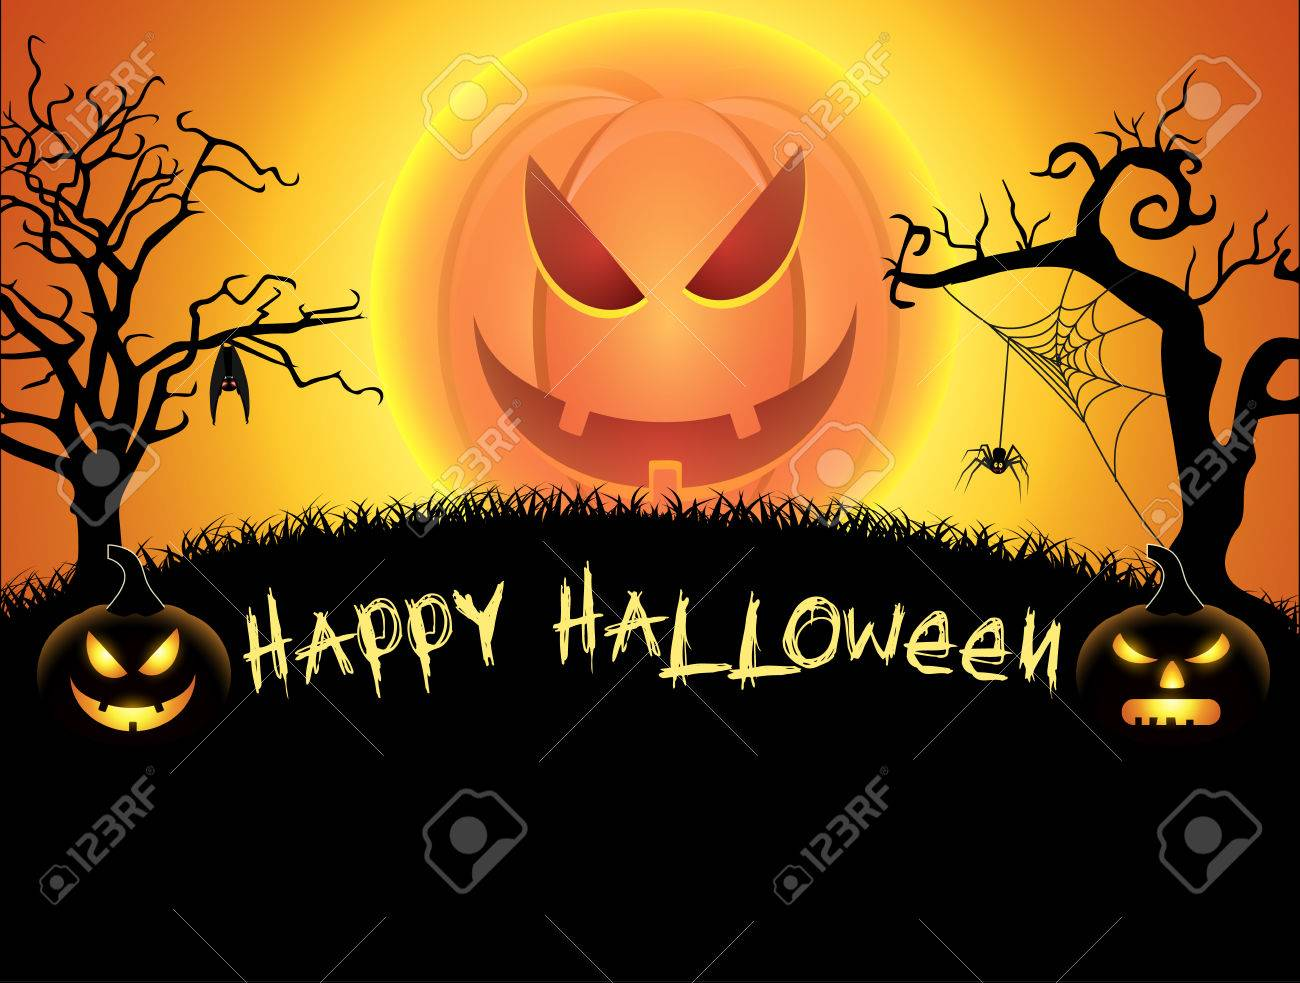 Spooky Card For Happy Halloween. Orange Background With Pumpkin Full Moon,  Spider, Witch